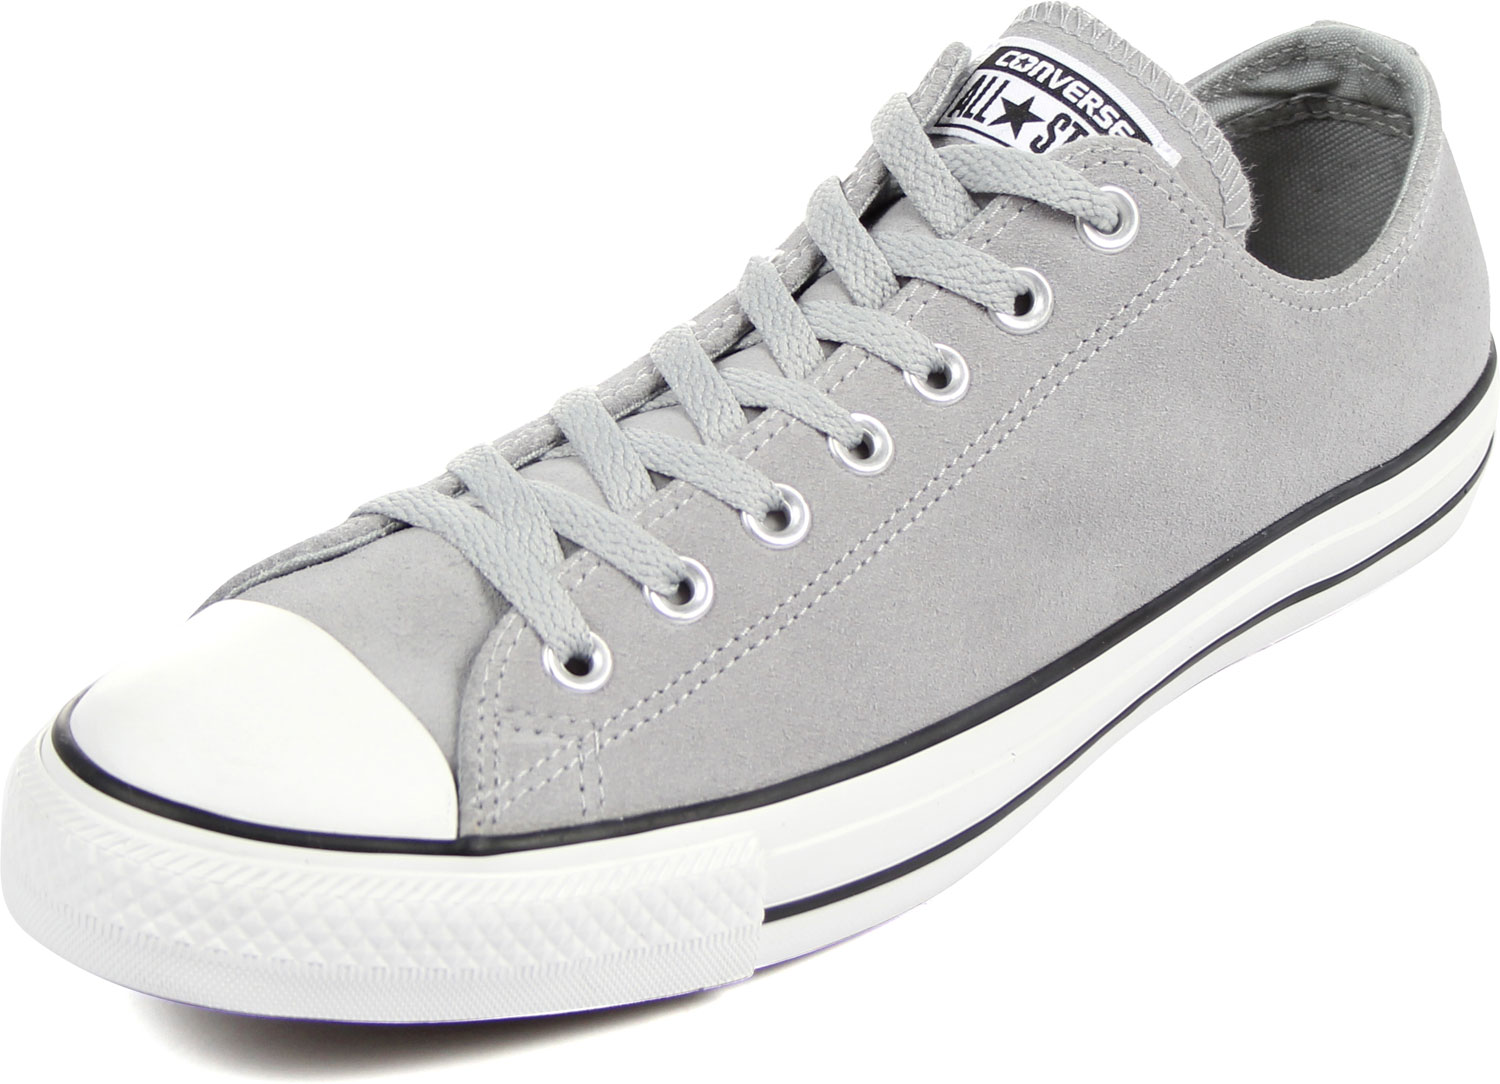 e2f30a12c2c1 Converse Chuck Taylor All Star Suede Ox Shoes